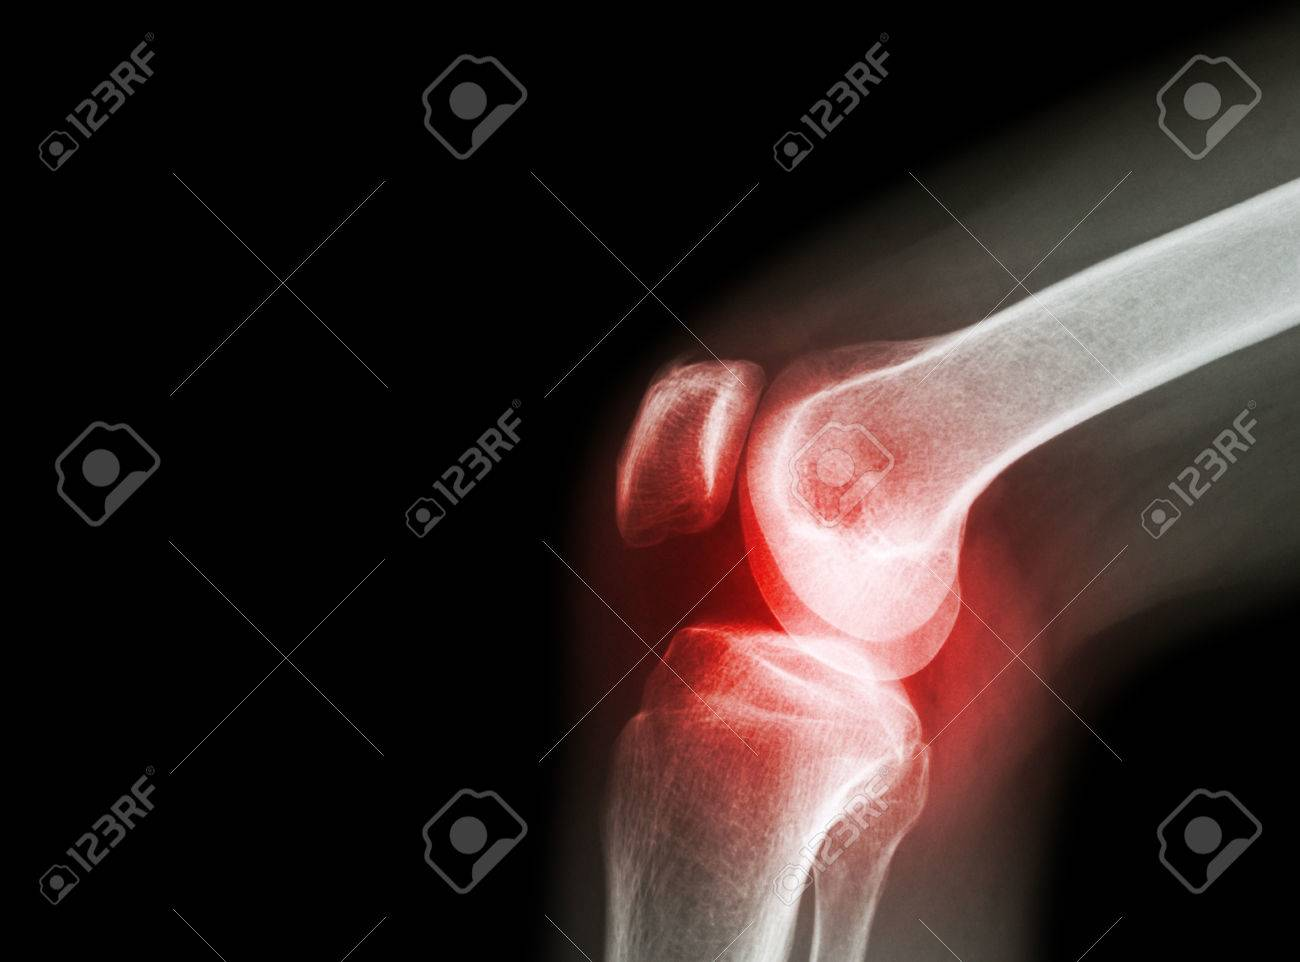 Film x-ray knee joint with arthritis ( Gout , Rheumatoid arthritis , Septic arthritis , Osteoarthritis knee ) and blank area at left side - 47040946